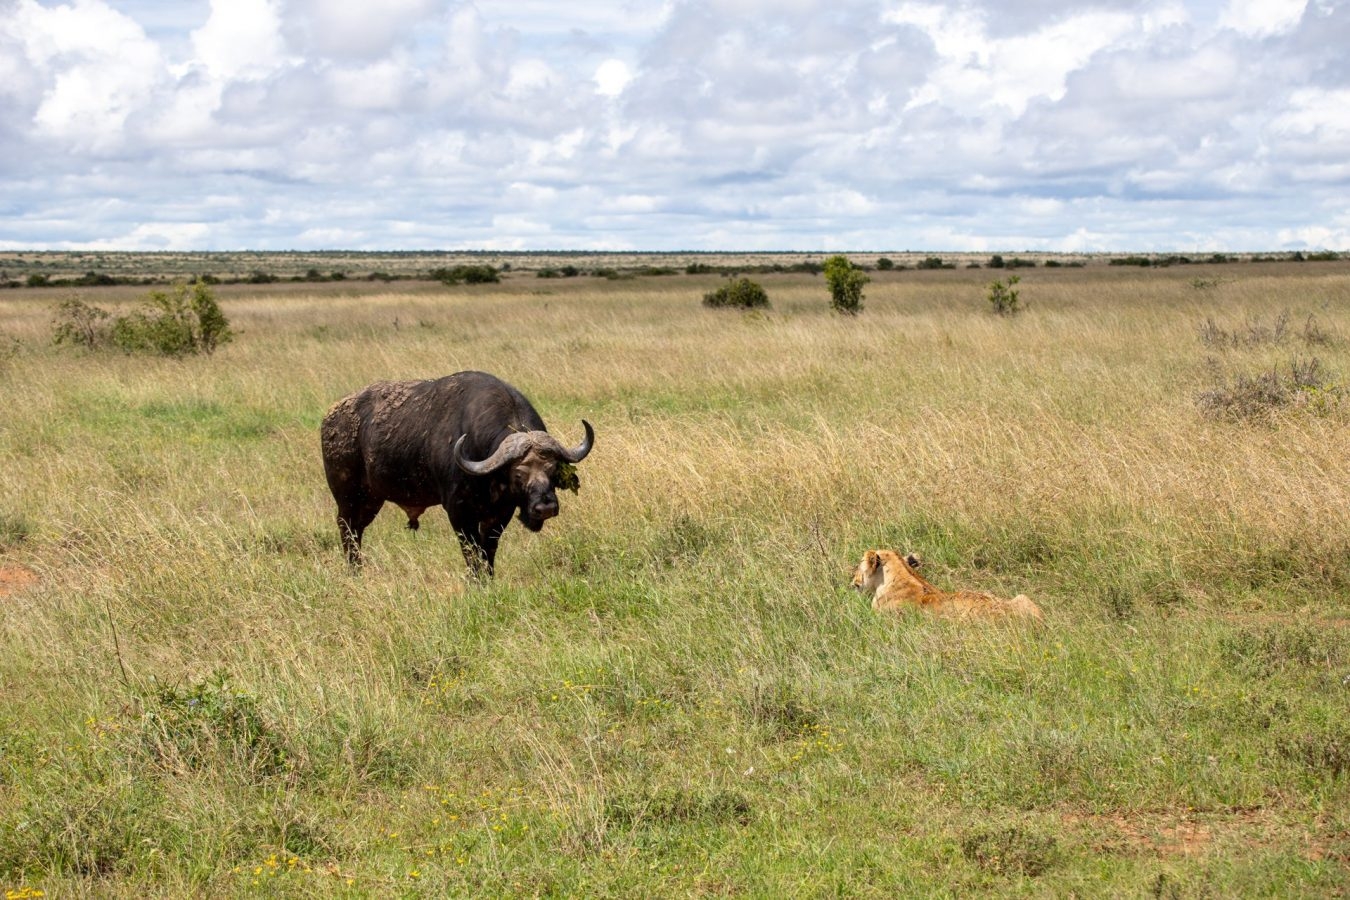 then the cape buffalo wandered in